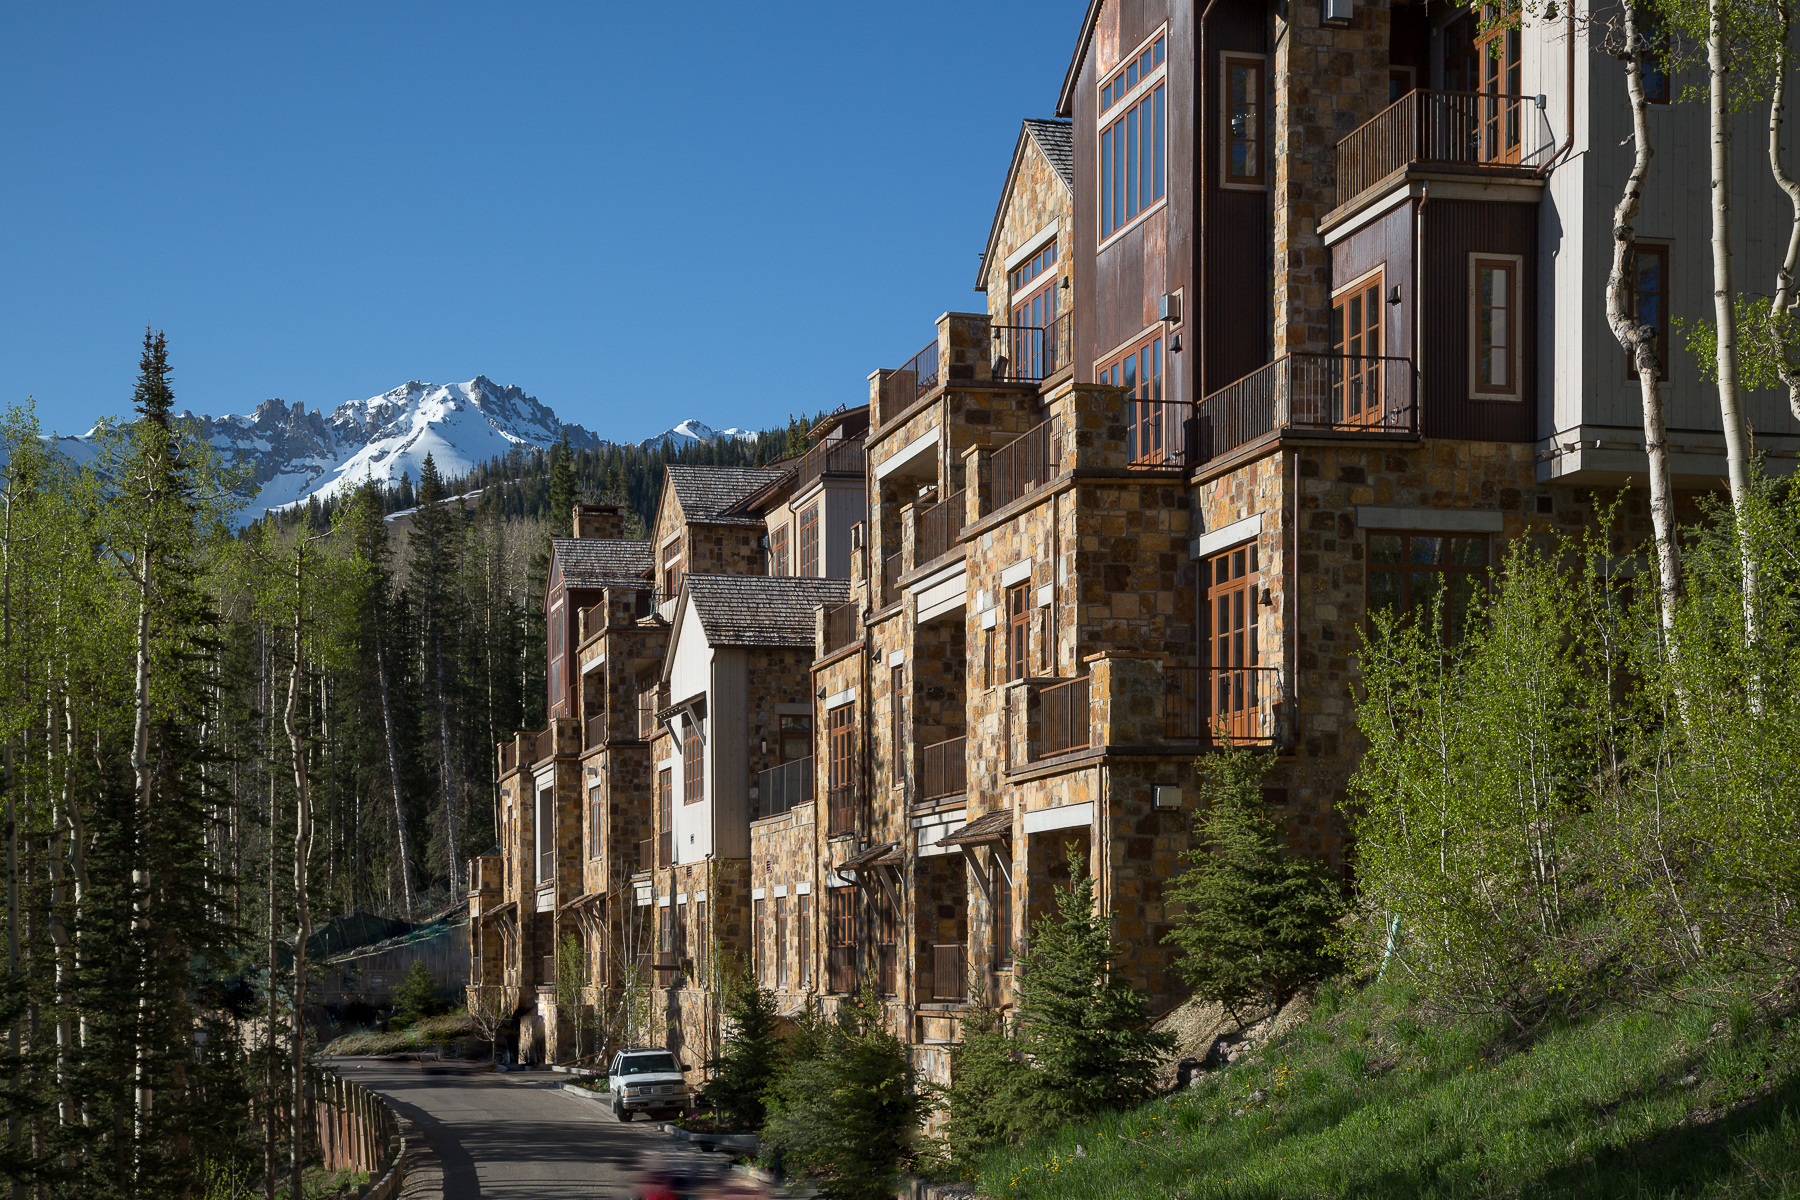 Single Family Home for Sale at Villas At Cortina 125 Cortina Drive Unit 4 Telluride, Colorado, 81435 United States